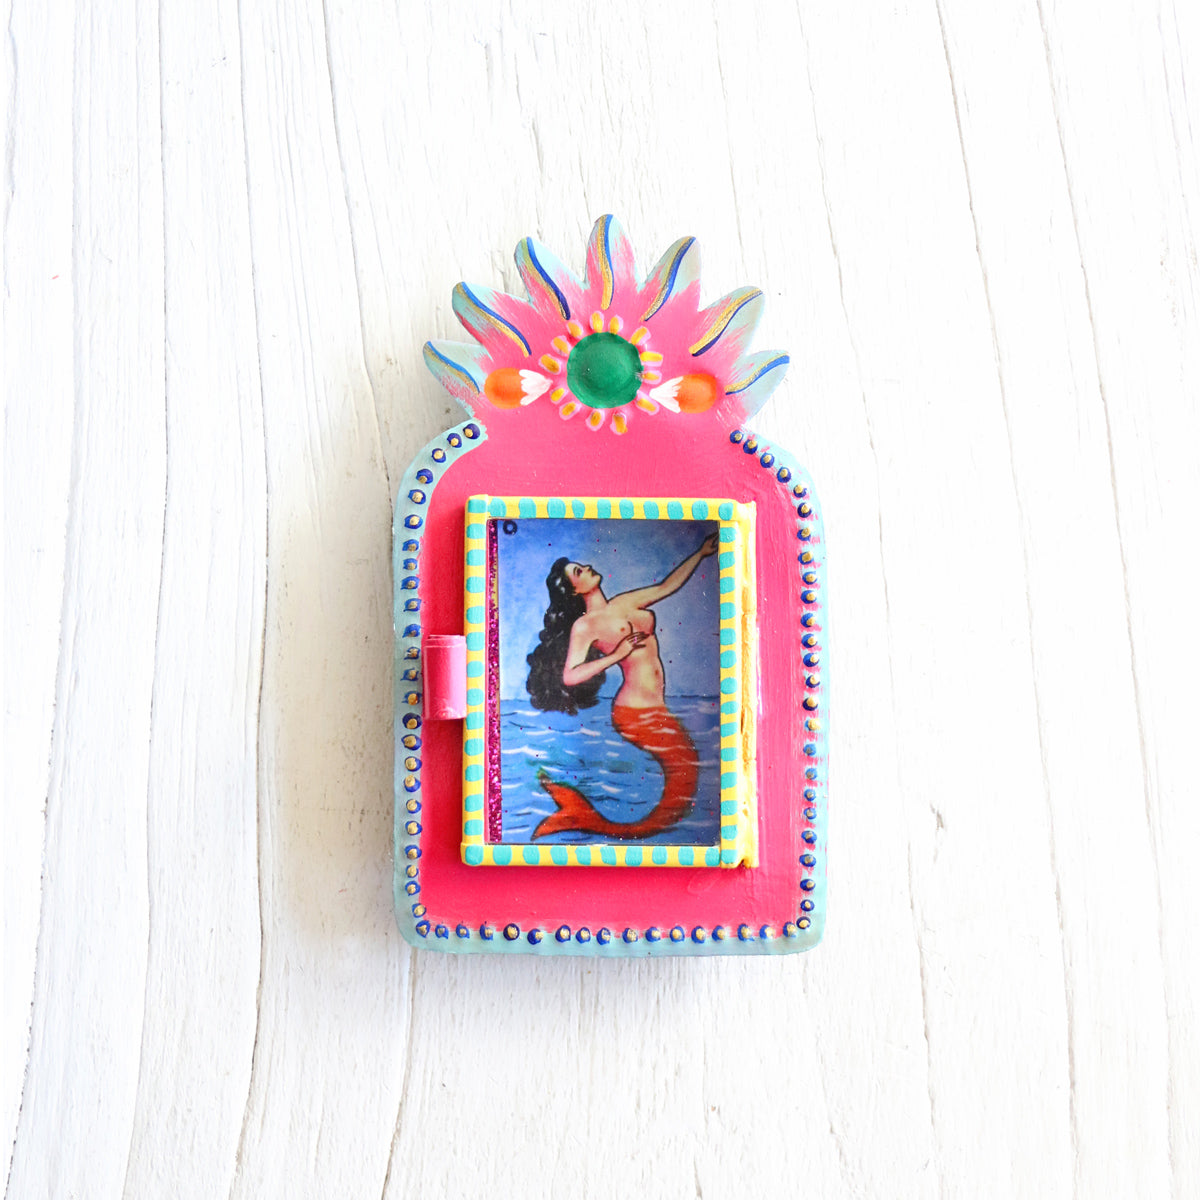 Sunset Mermaid Mini Shrine - Pink